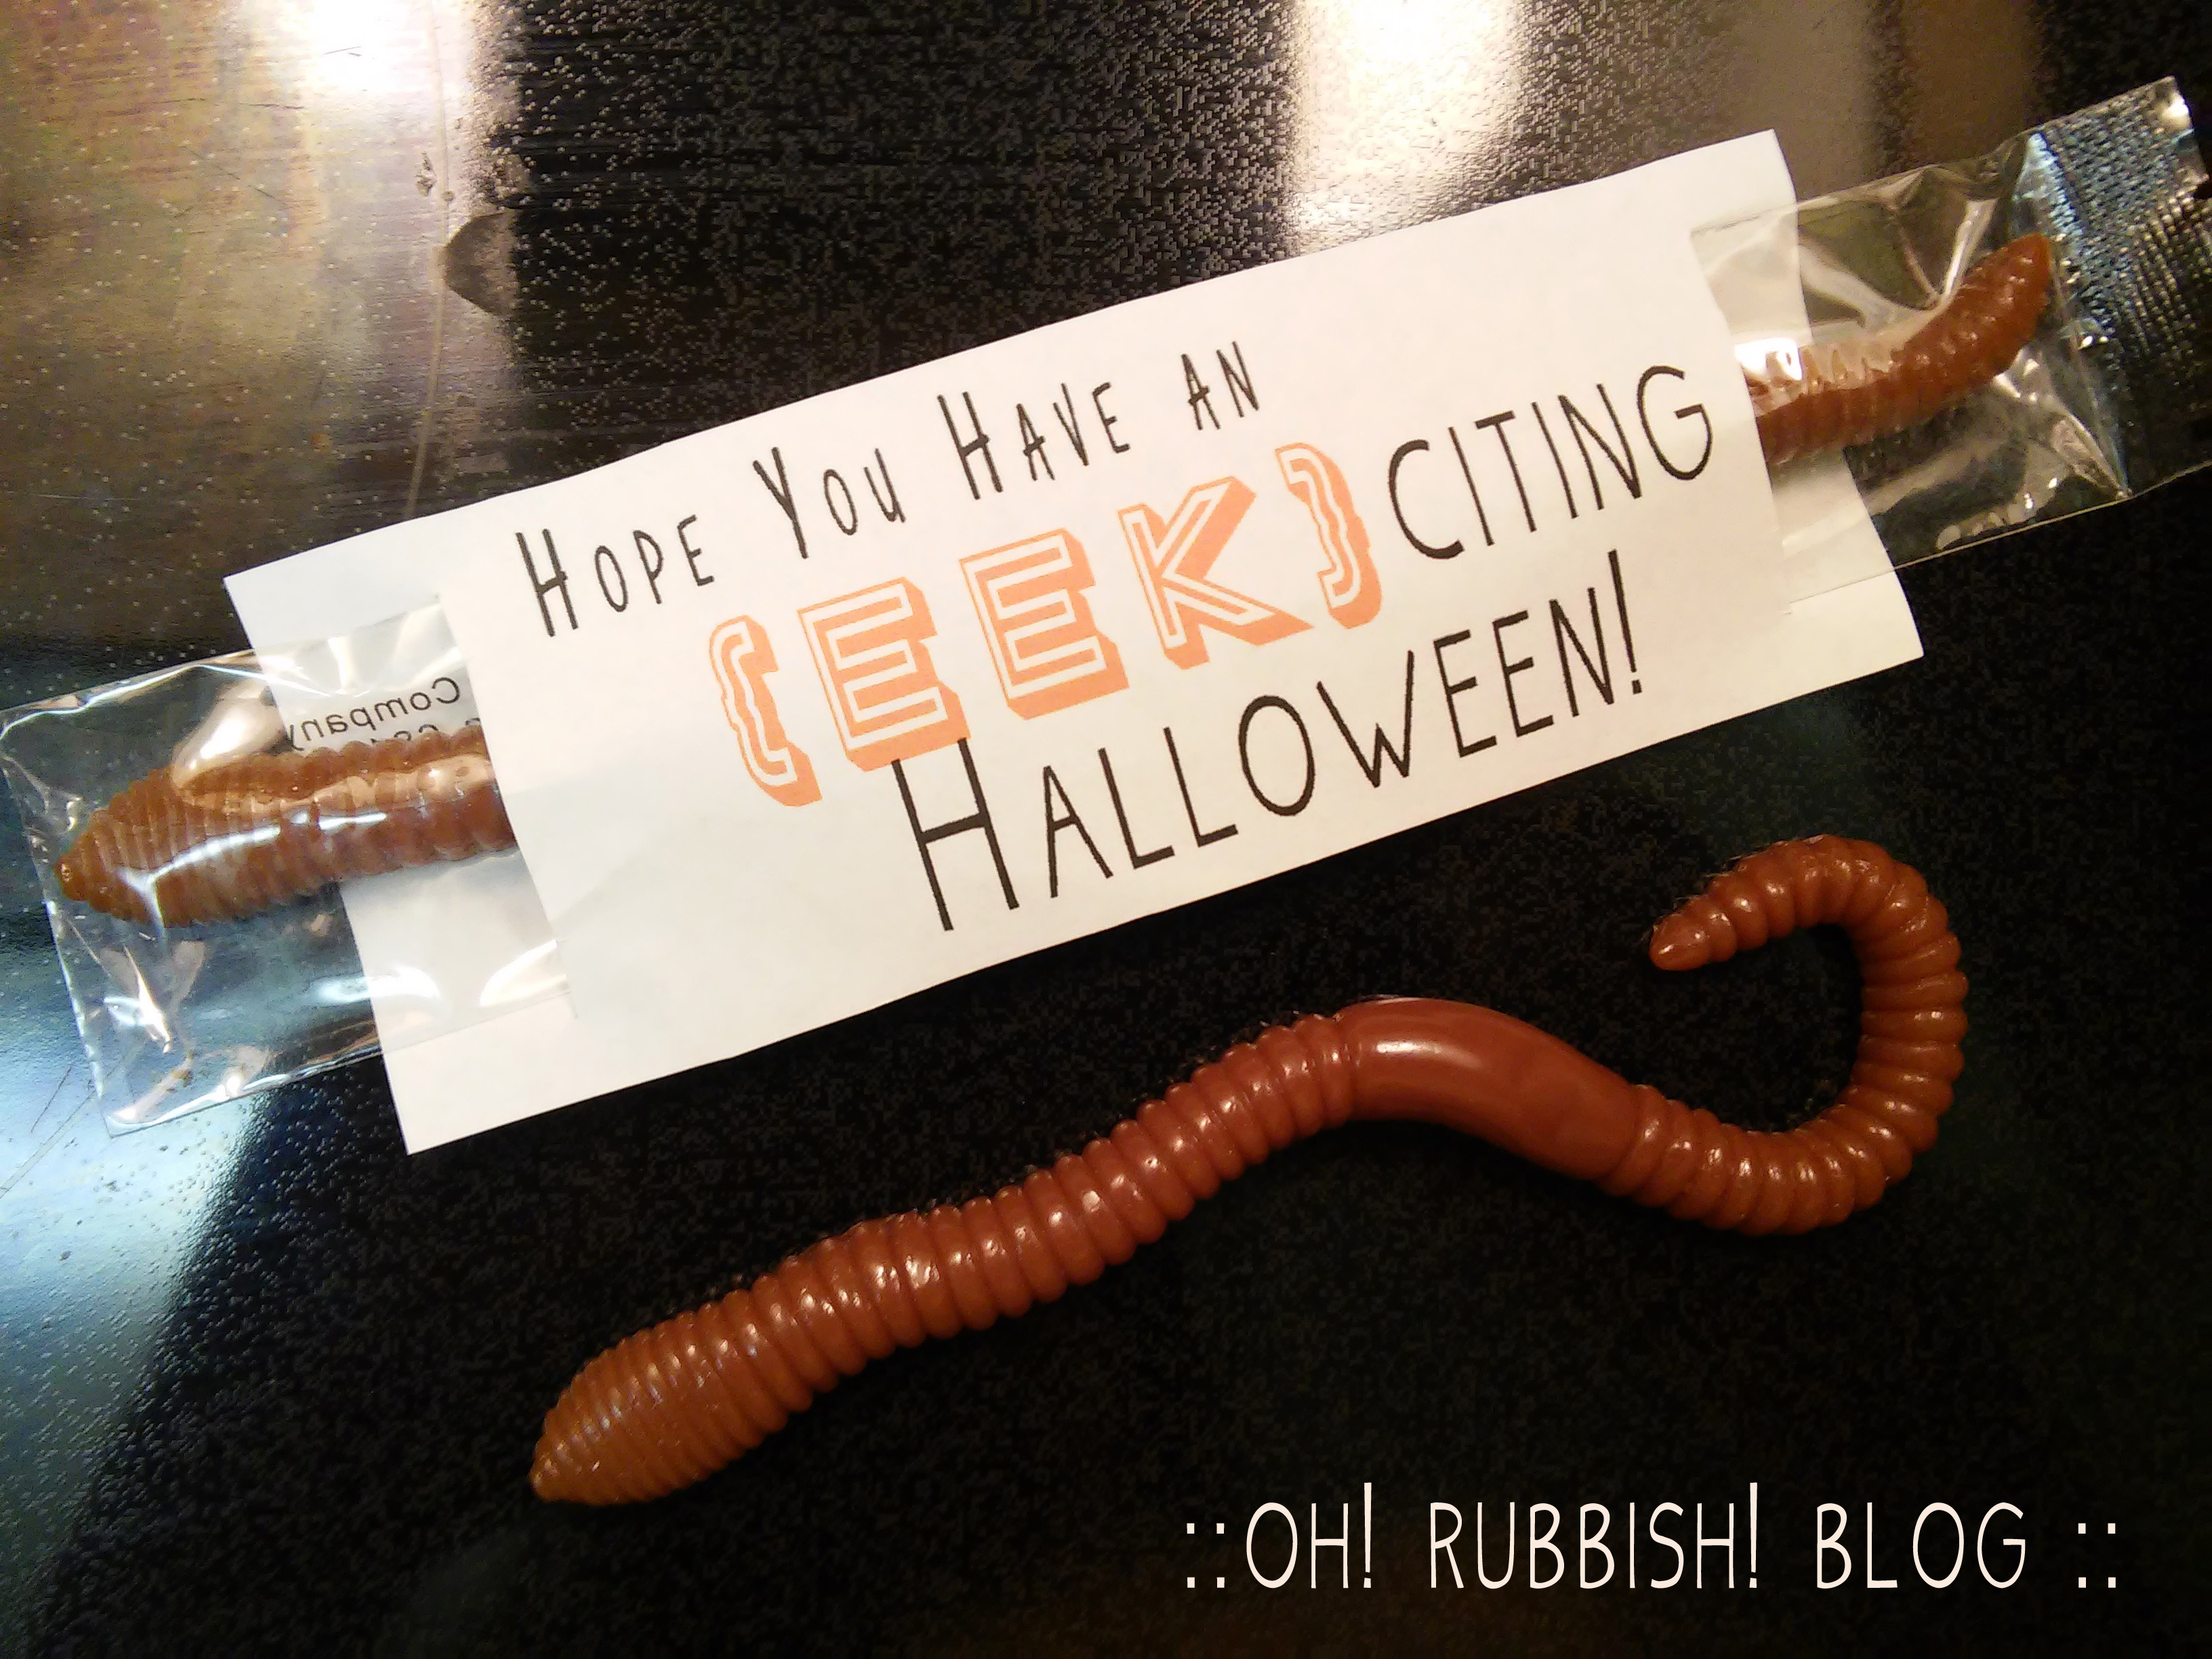 Hope You Have an EEK-citing Halloween by oh! rubbish! blog